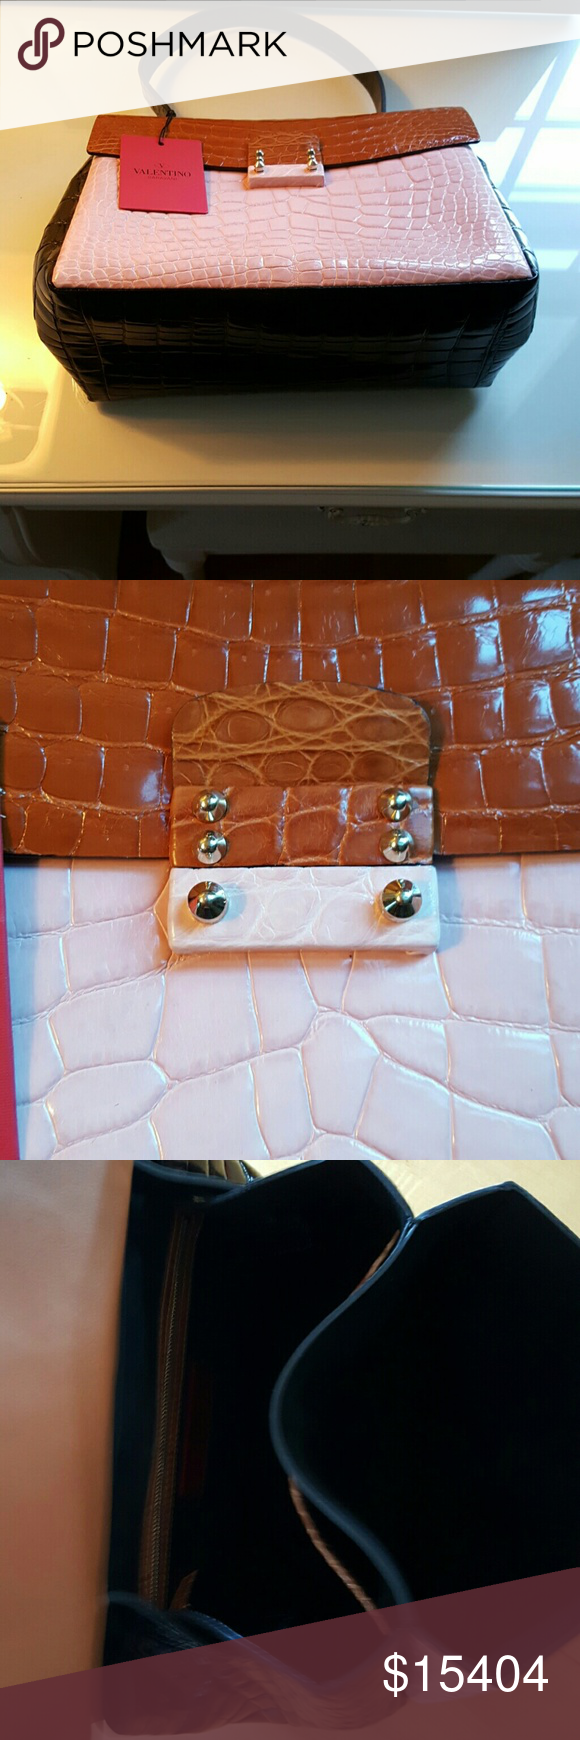 Tricolor Valentino satchel. With silver hardware. Black,brown and light pink crocodile skin satchel purse. One zip pocket inside along with two open pockets.I purchased at Neiman Marcus. The original price was $25,675.00. I paid $15,404.99 and ive never used it. The original Valentino tag is inside and the Neiman Marcus tag is still attached on the strap. I am willing to negotiate the price as long as you keep it reasonable and respectful.This is in beautiful condition! No trades…